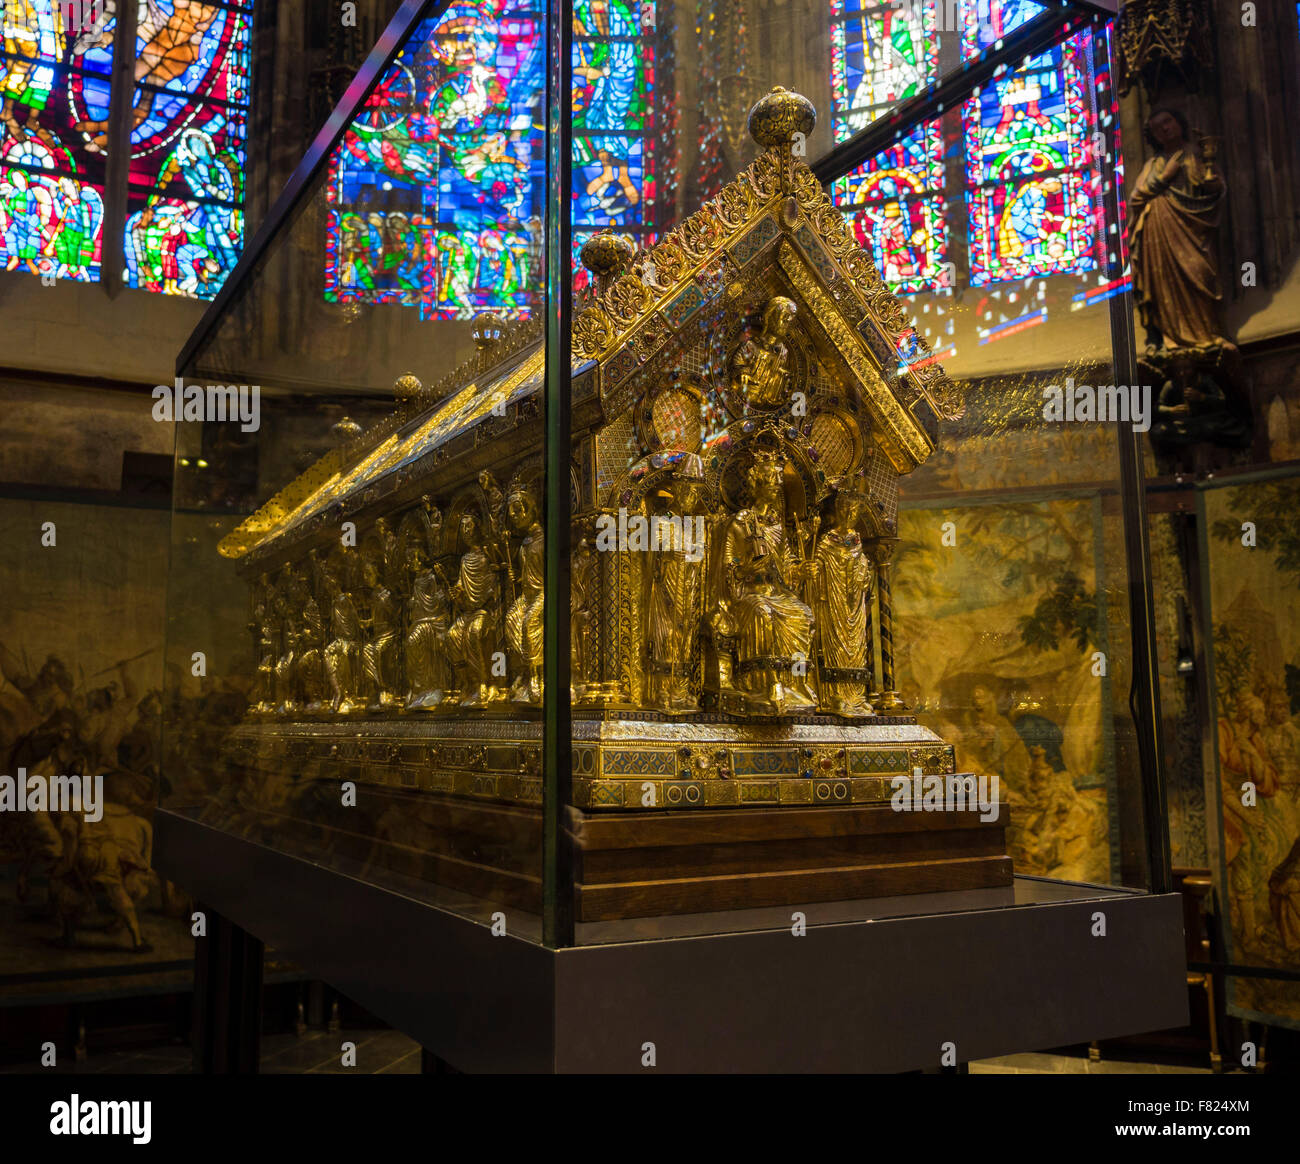 The Shrine of Charlemagne in the Aachen (Aix-La-Chapelle) cathedral. - Stock Image